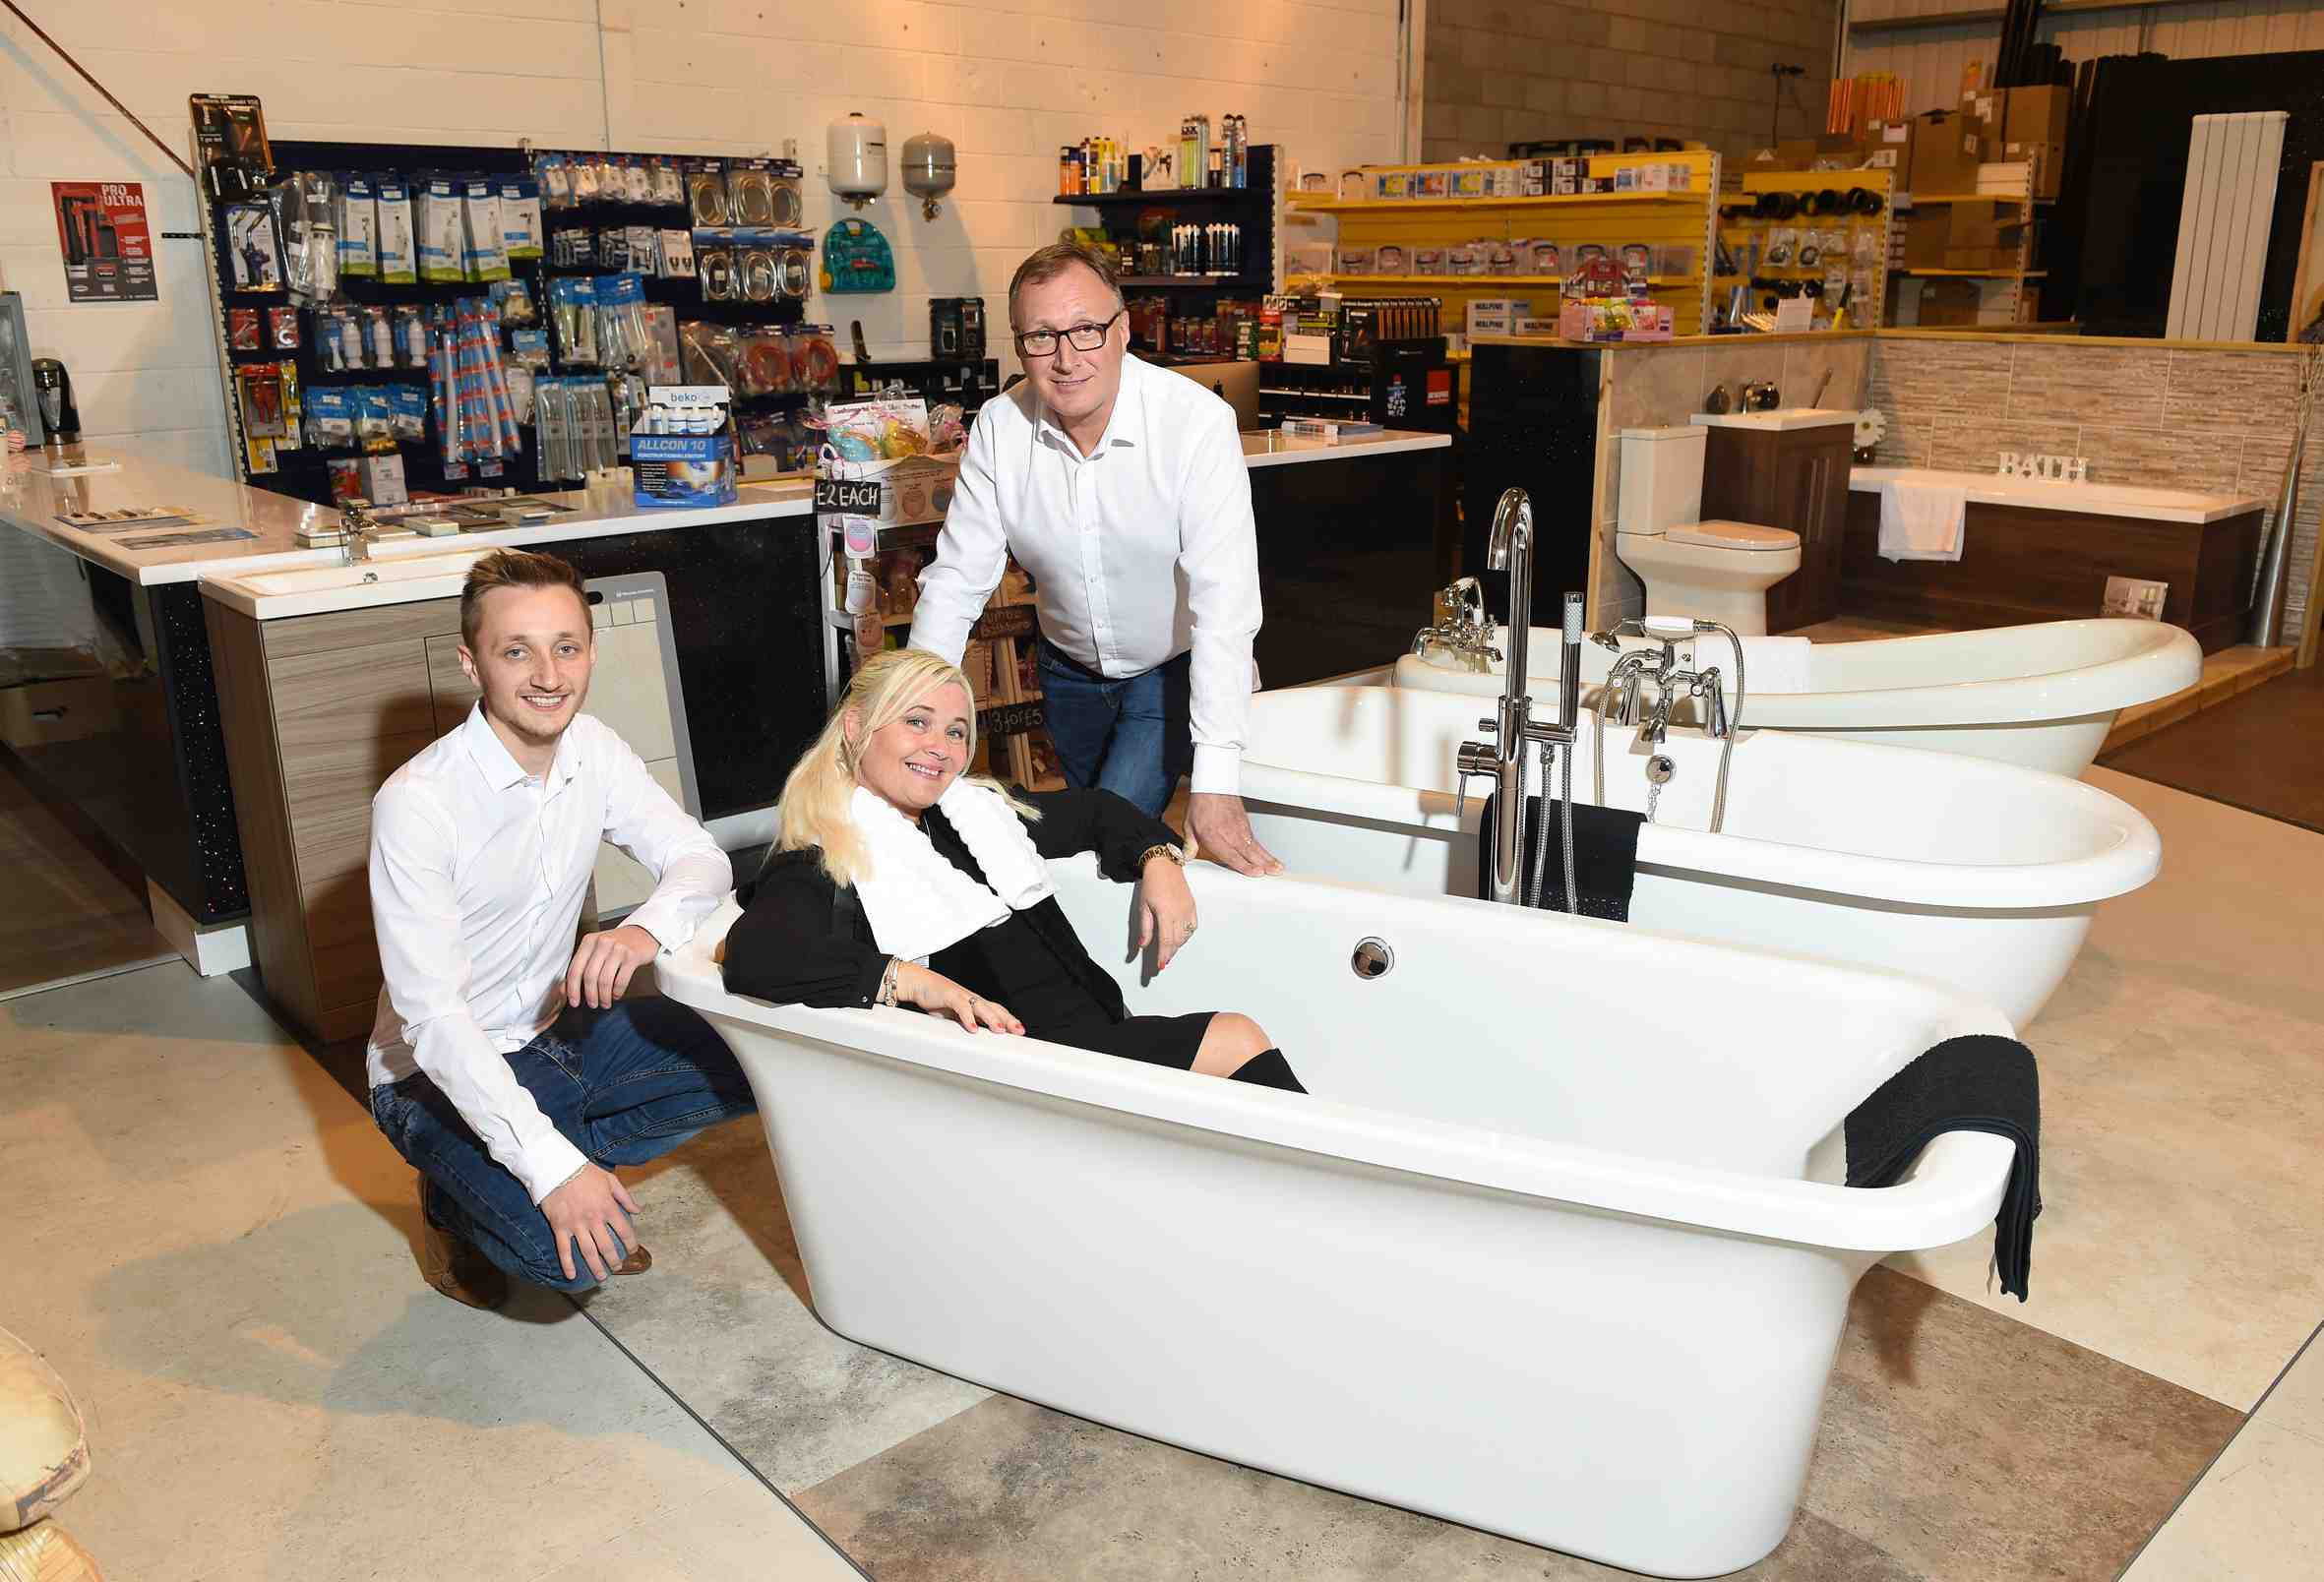 New plumbing and bathroom firm hoping to make a splash